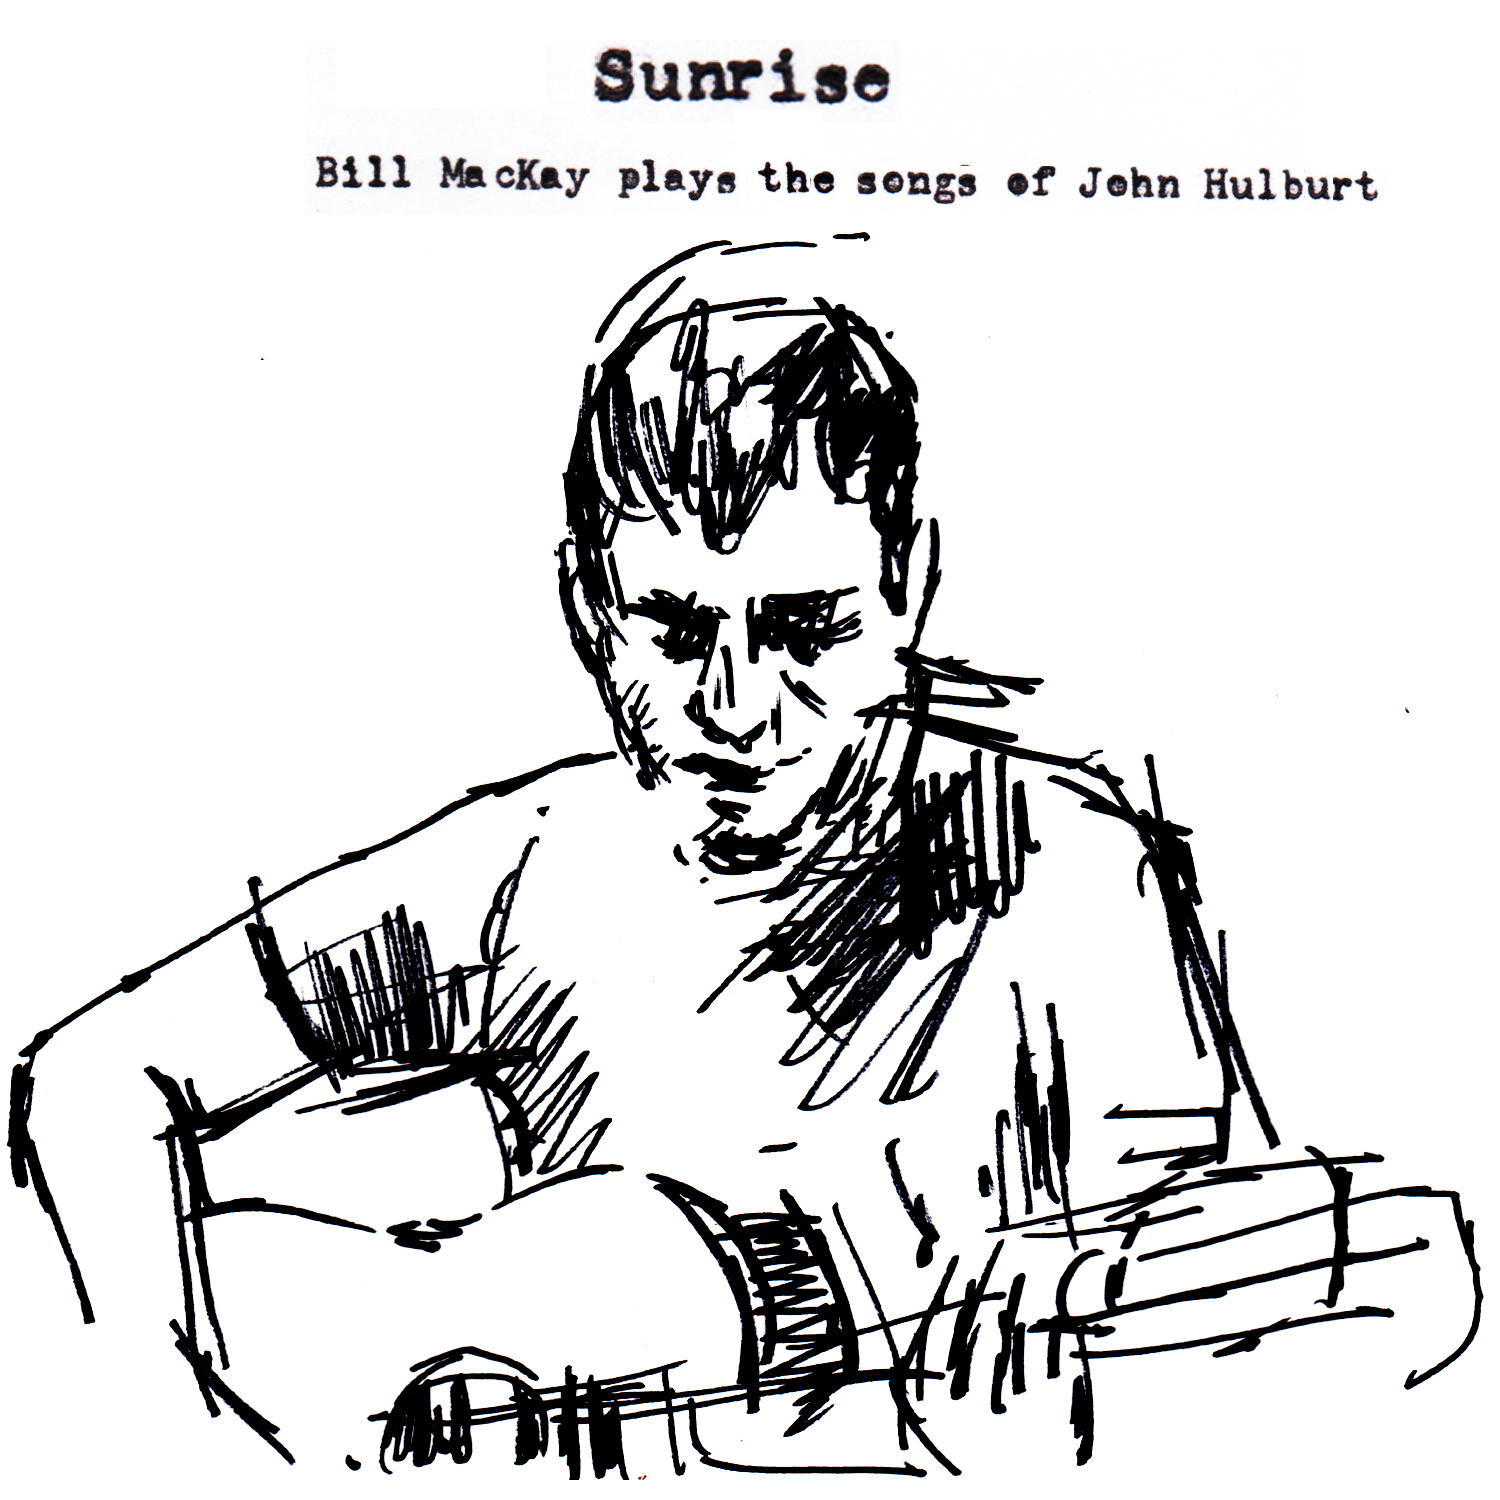 Sunrise : Bill MacKay Plays The Songs of John Hulburt